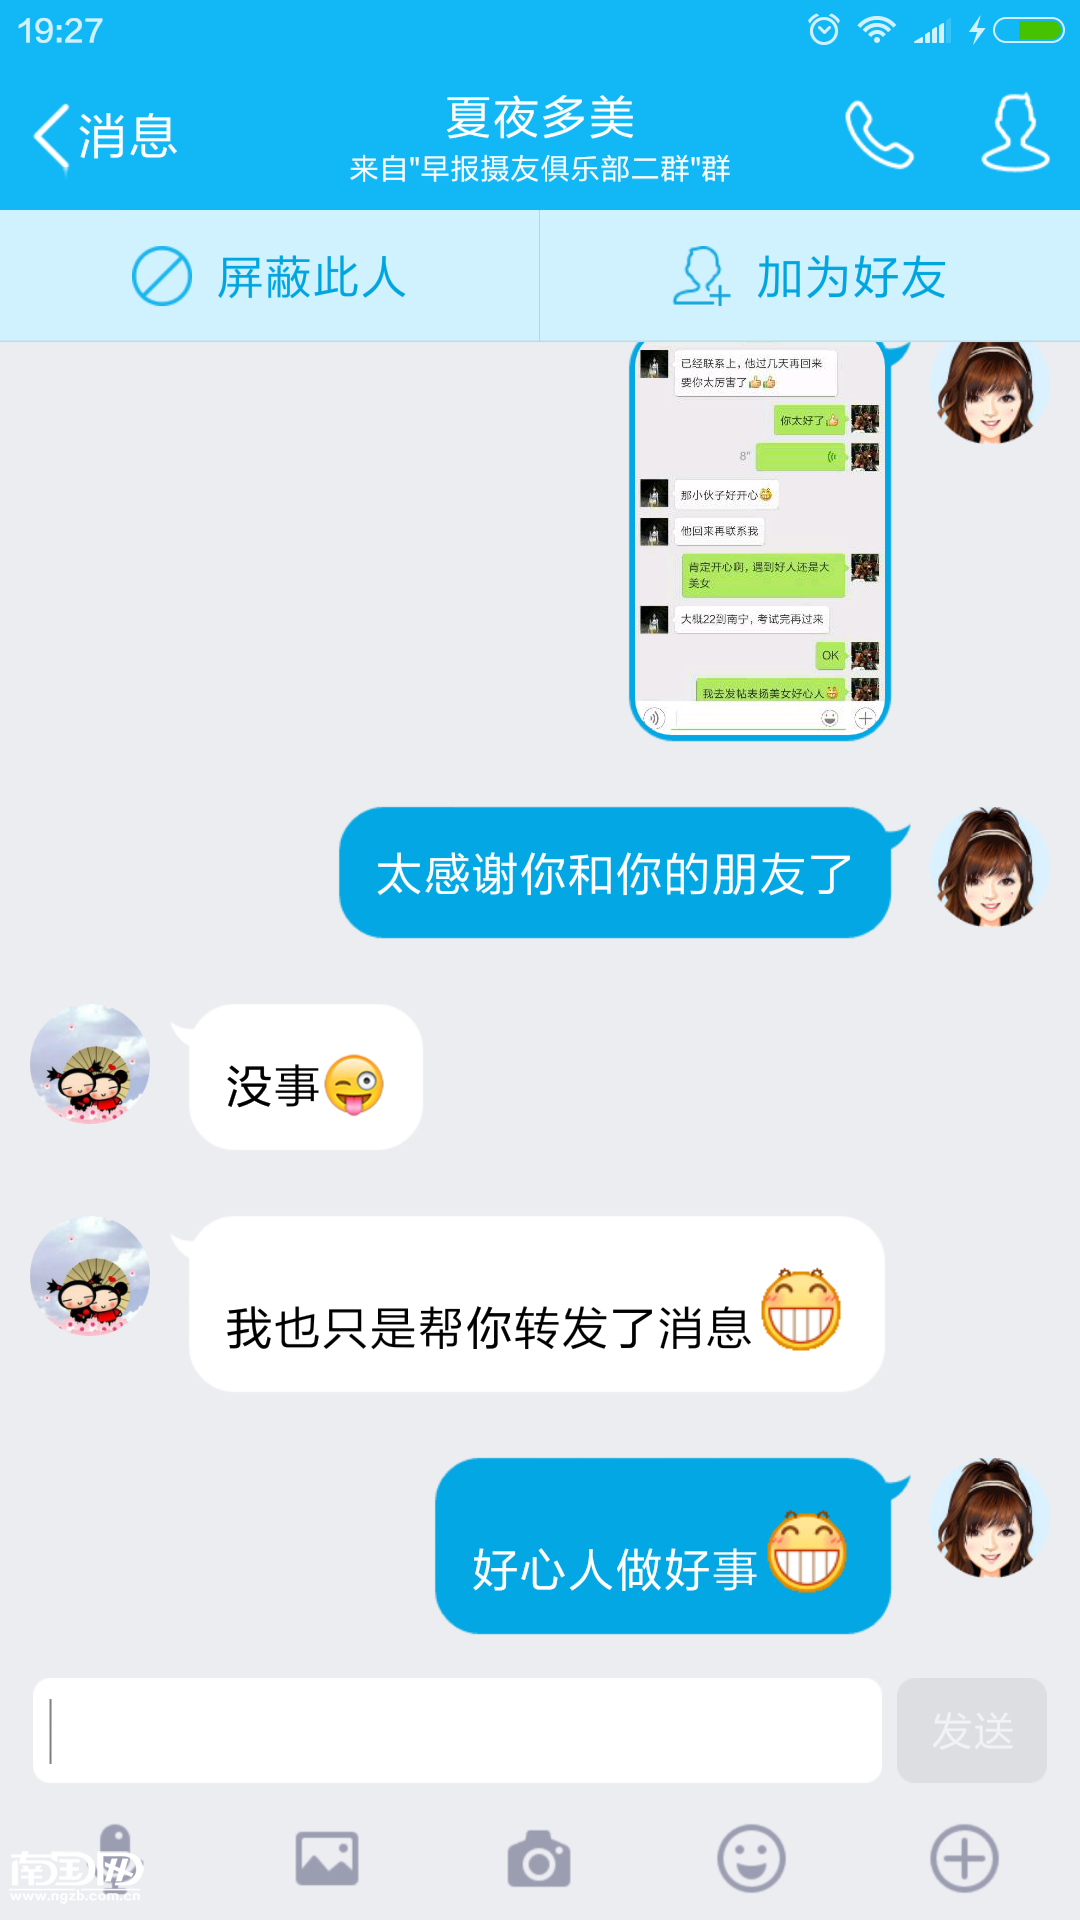 Screenshot_2016-06-15-19-27-22_com.tencent.mobileqq.png